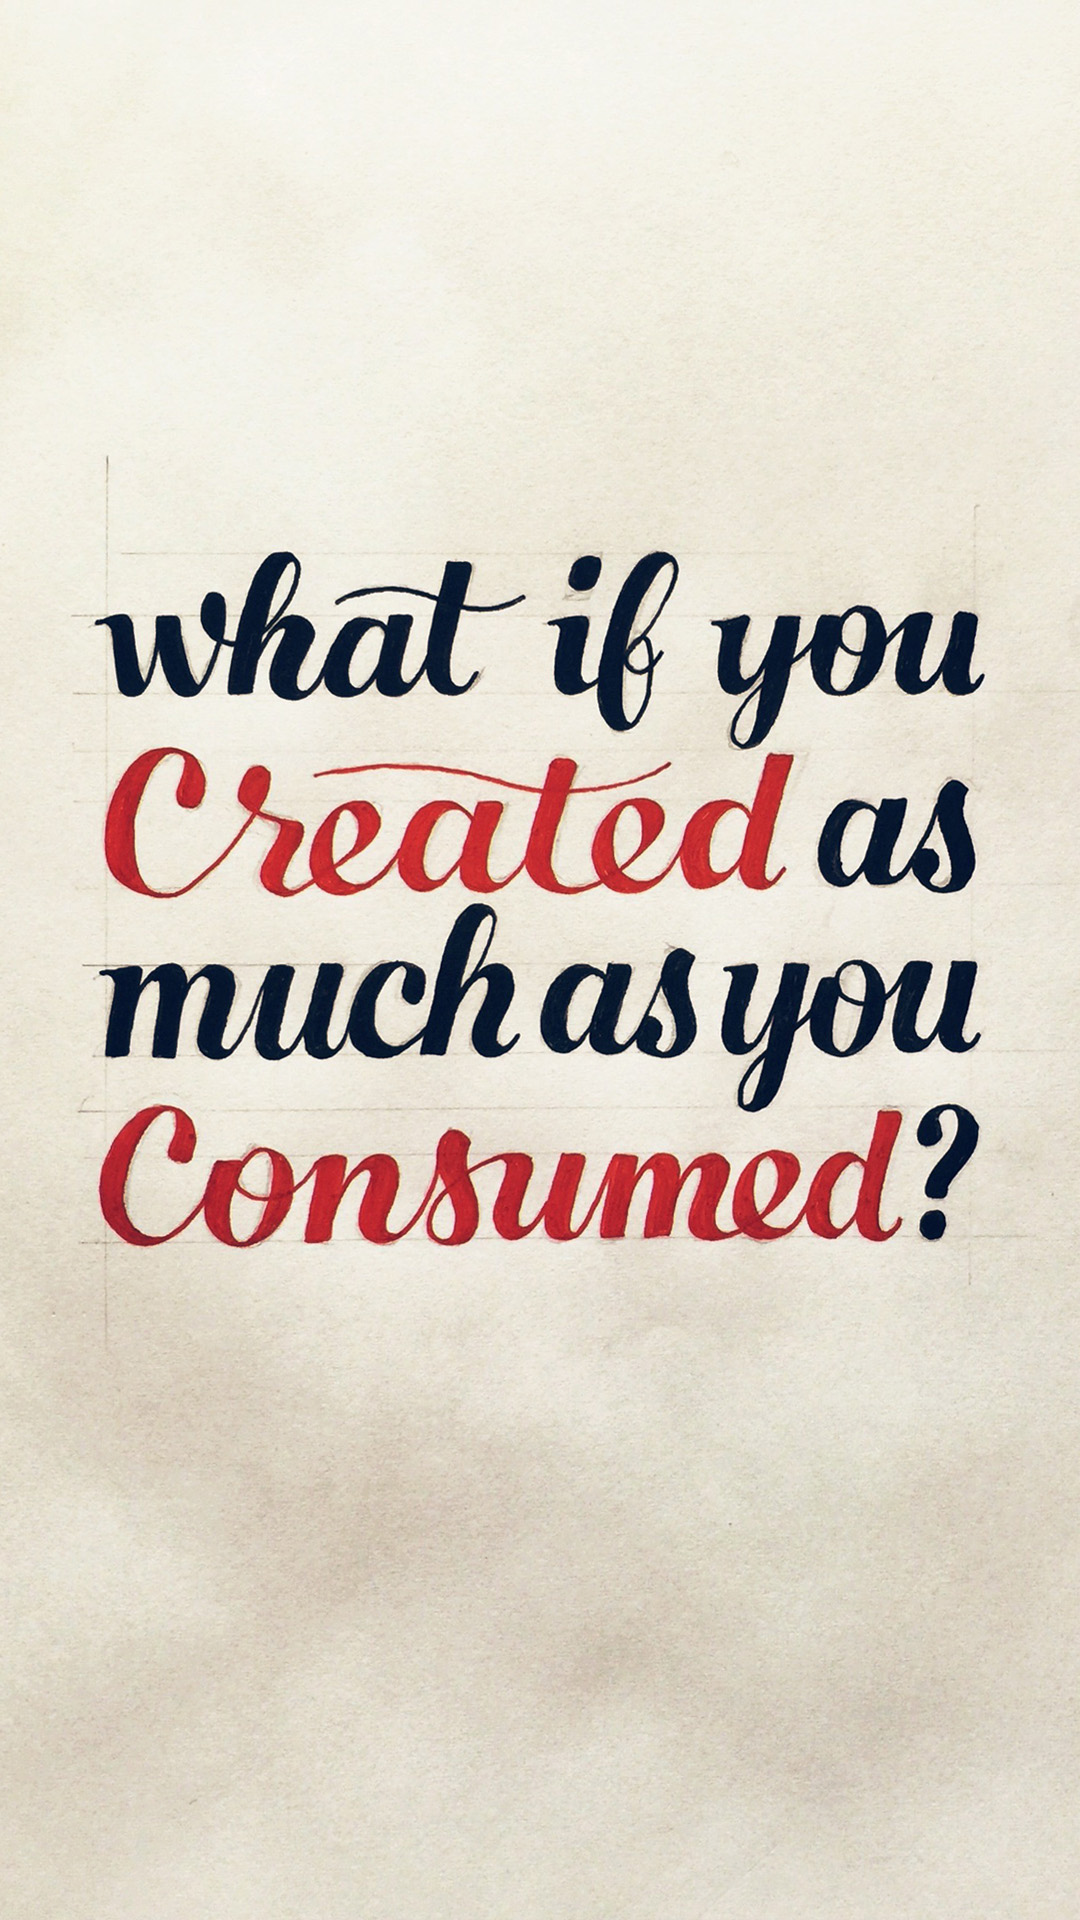 what-if-you-created-as-much-as-you-consumed-iphone-wallpaper